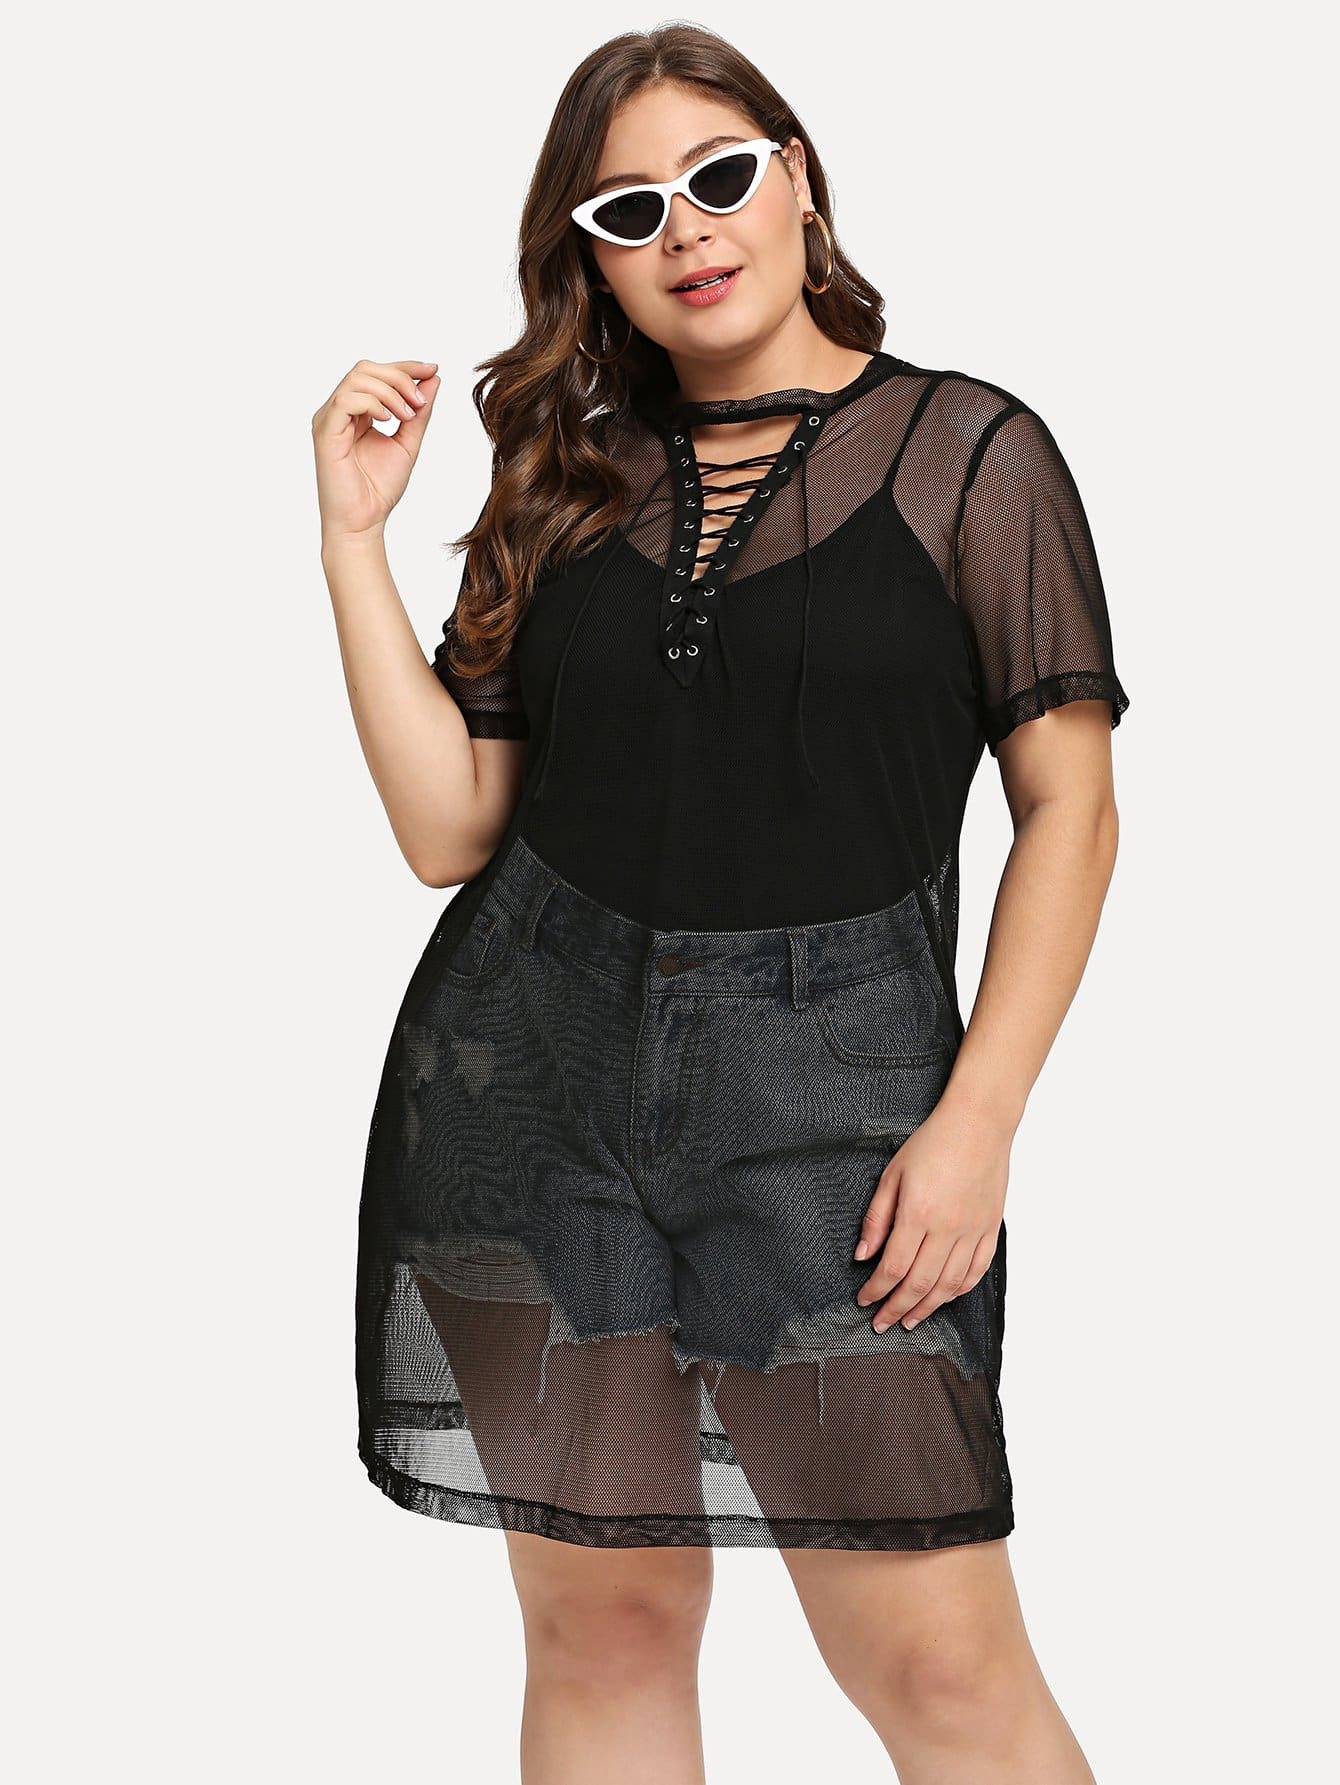 Grommet Lace Up Mesh Top striped grommet lace up dropped shoulder top